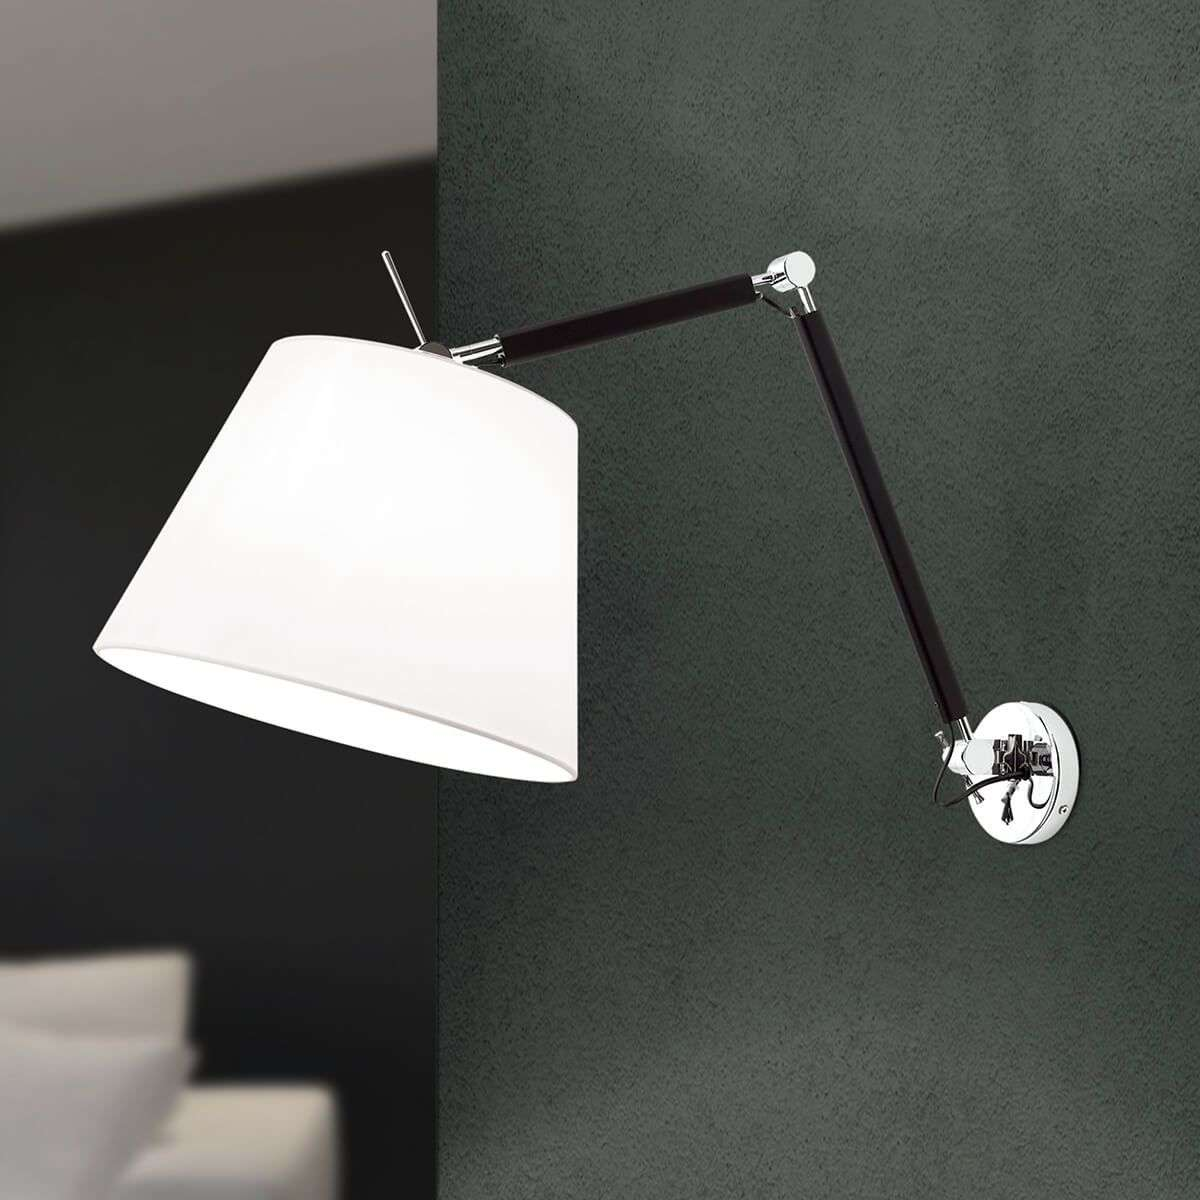 Wall light leandro with a flexible arm lights wall light leandro with a flexible arm 7255328 31 aloadofball Image collections